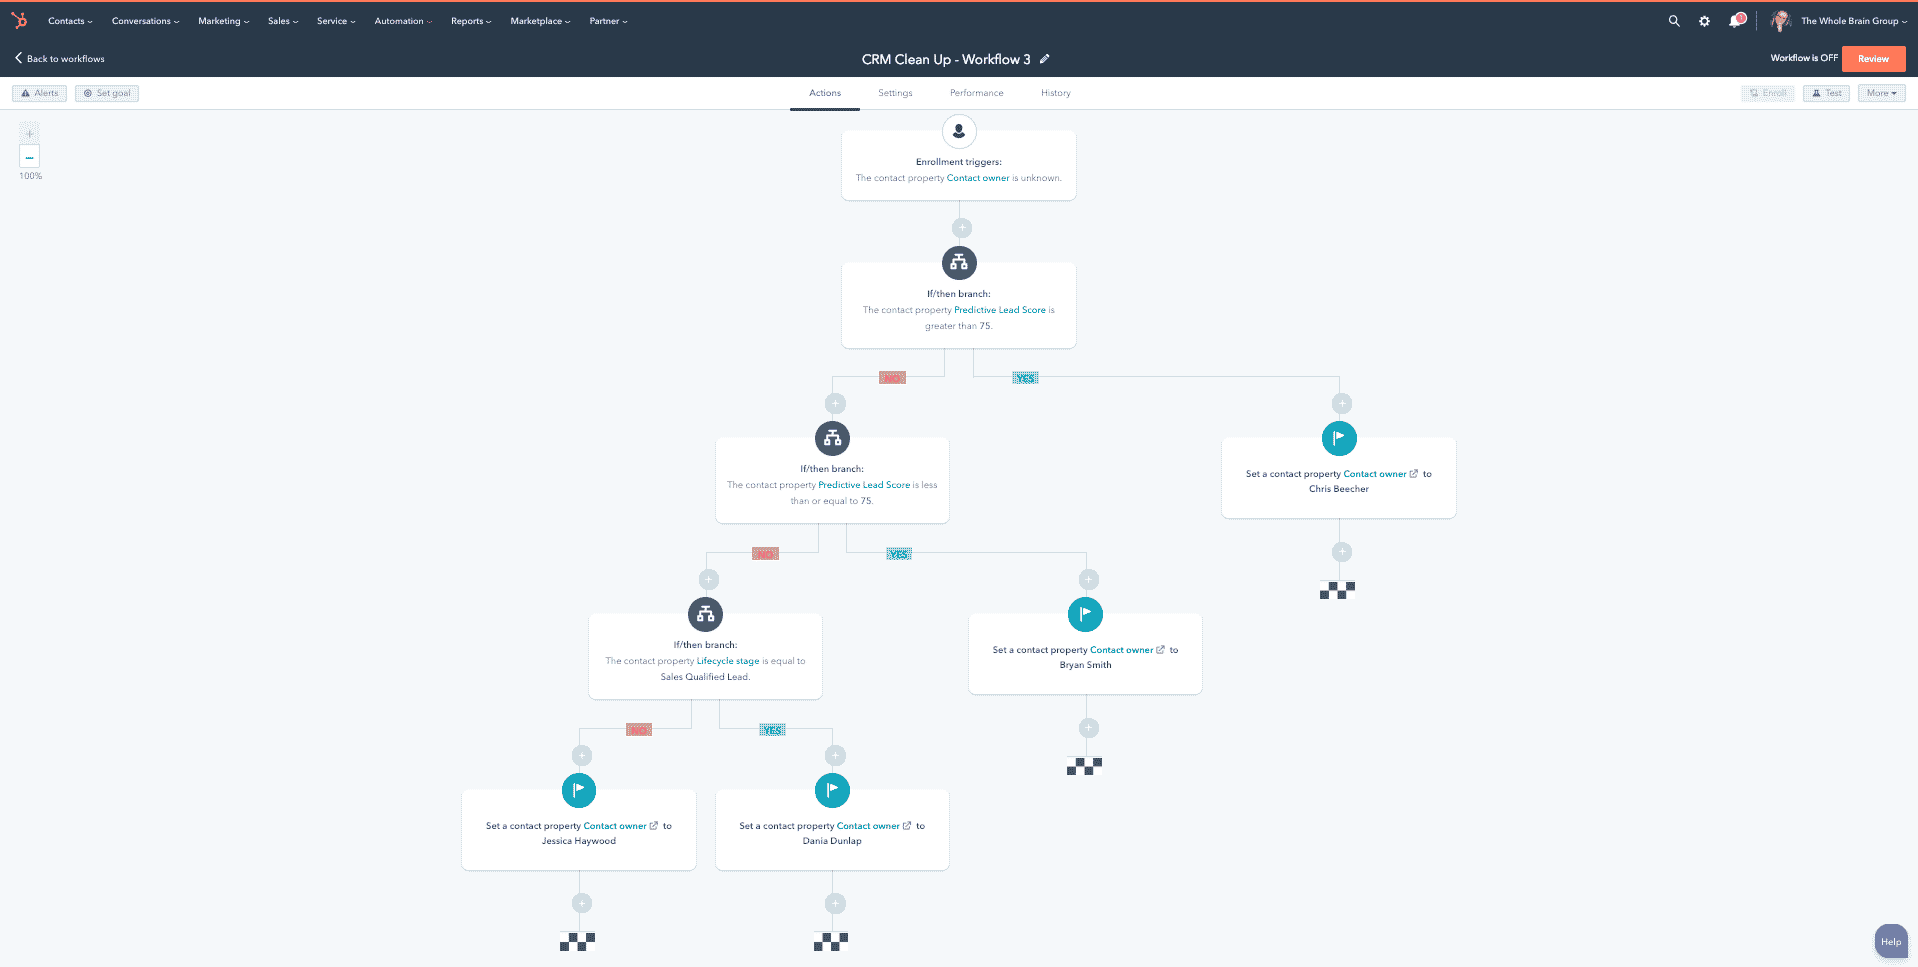 CRM Clean Up Workflow - Automate Assigning New Leads to Sales People